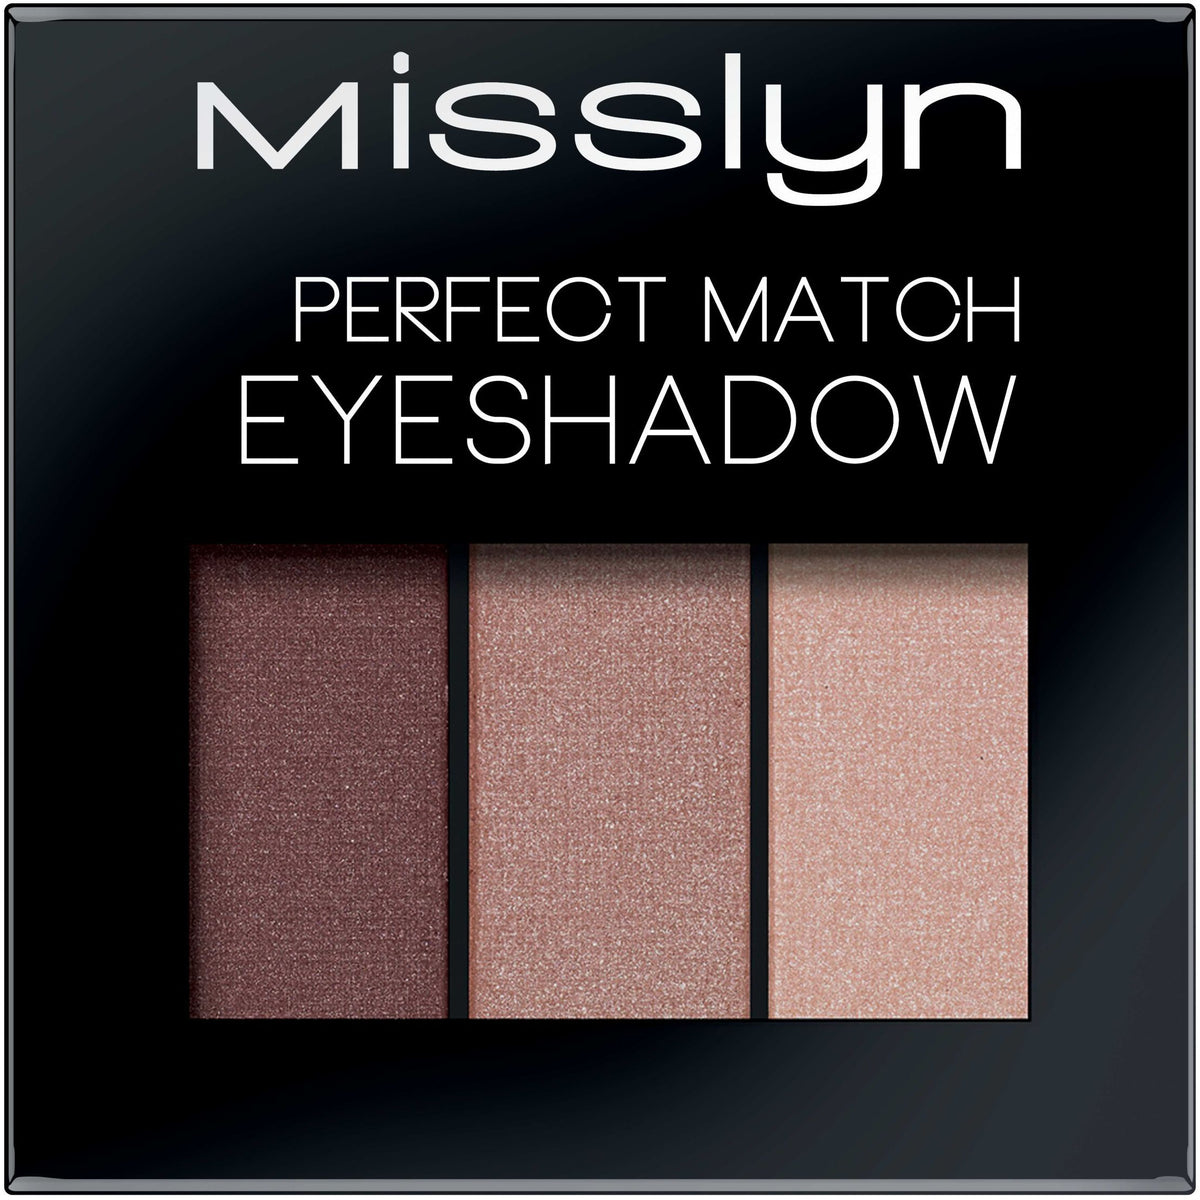 PERFECT MATCH EYESHADOW no.21